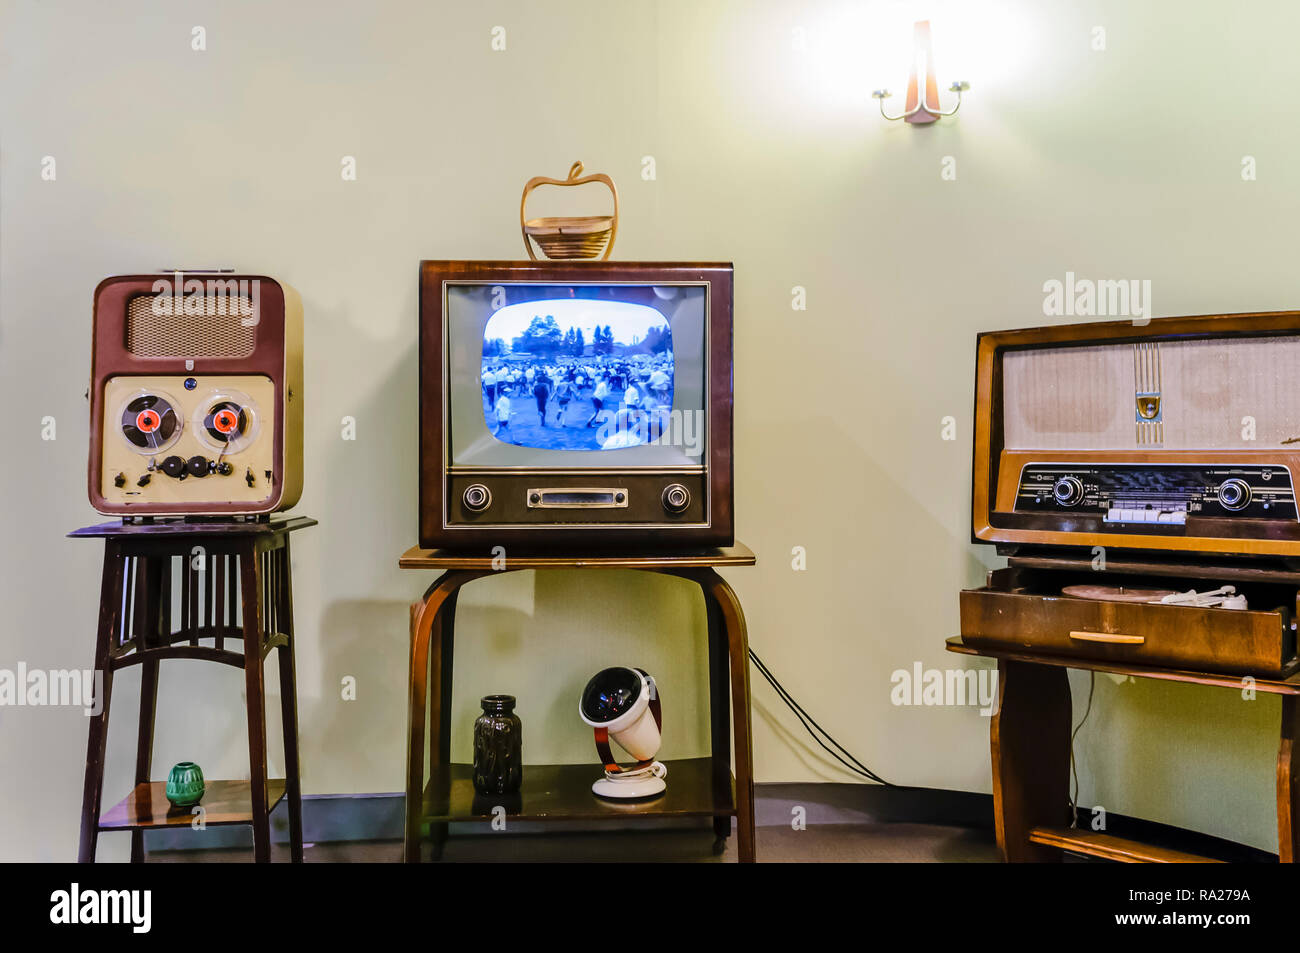 Reel to Reel player, black and white television and an old medium/long wave radio in a living room from the 1950s. Stock Photo